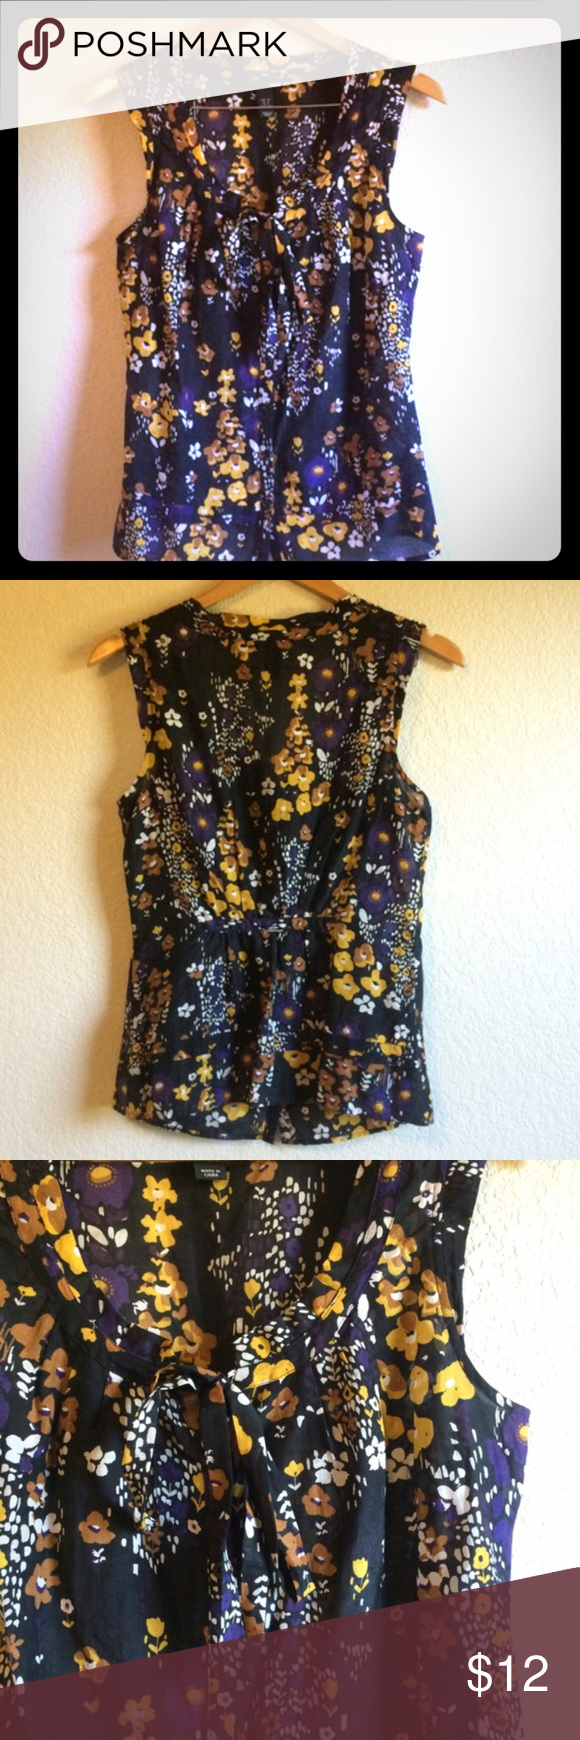 H&M Sheer Floral Sleeveless Blouse Lightweight, semi-sheer material in a vintage-inspired floral pattern. Top ties at front. Runs a bit small (more like a 6). H&M Tops Blouses